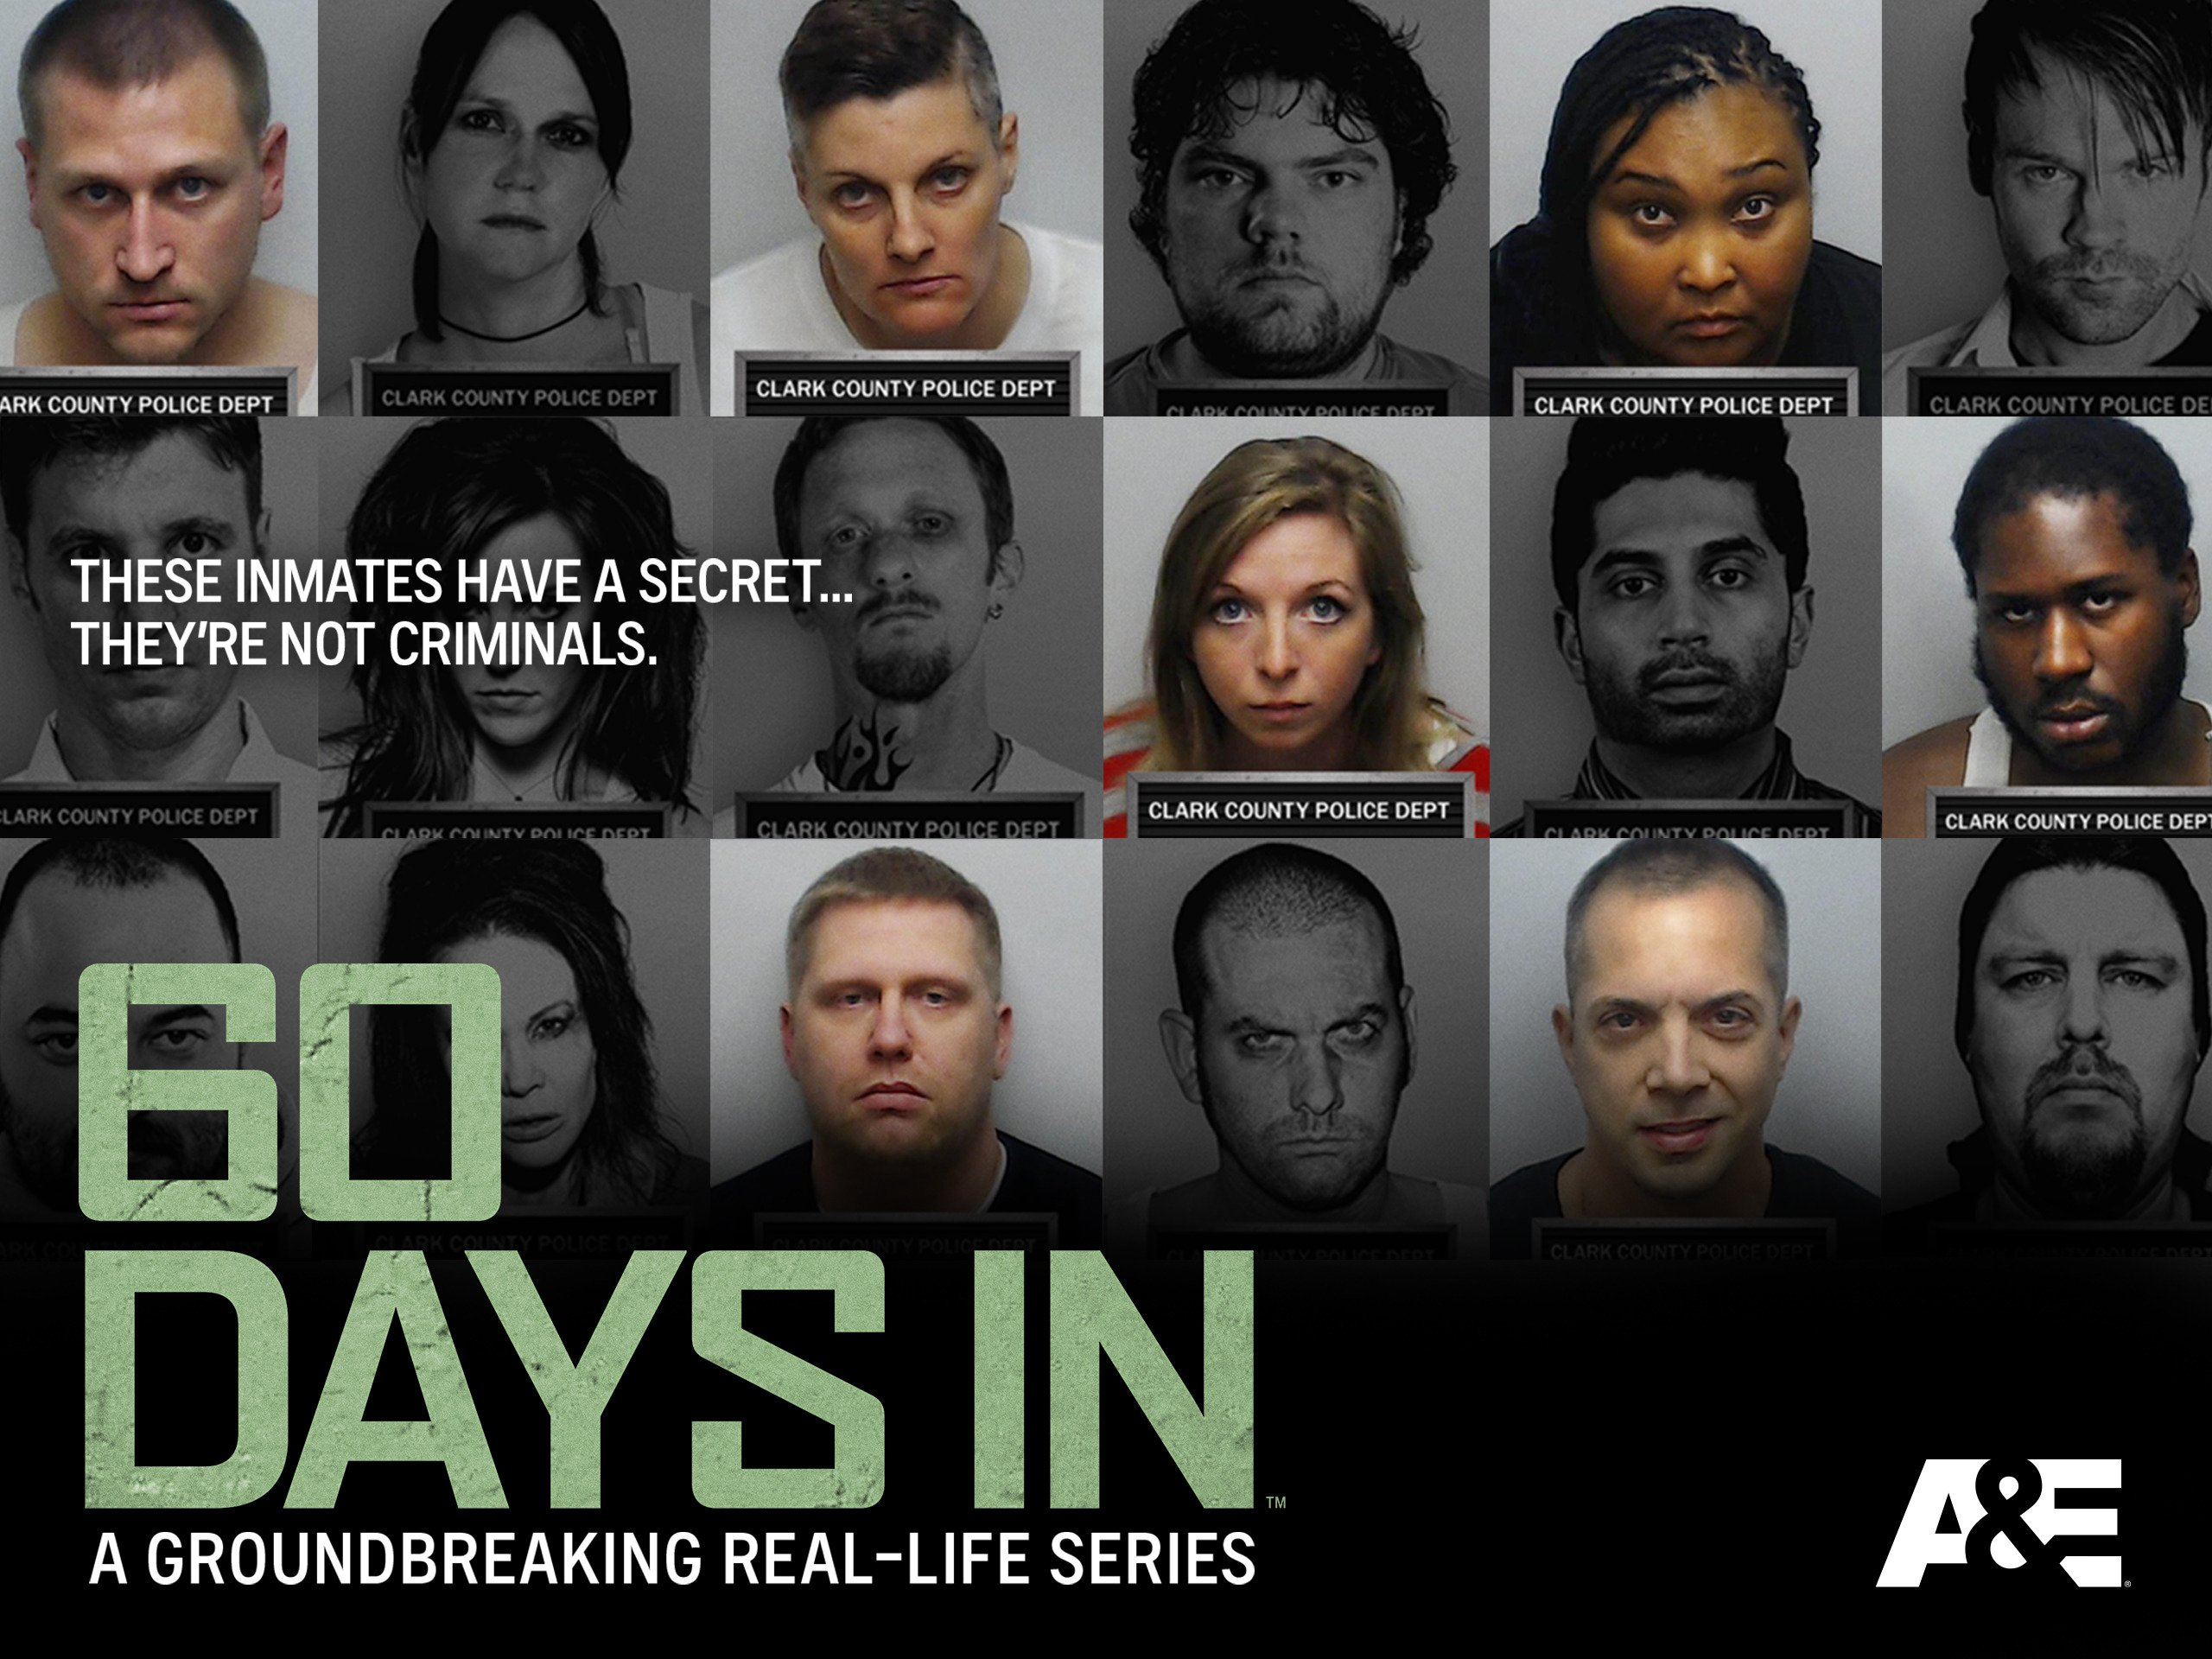 60 days in reunion season 5 full episode free online